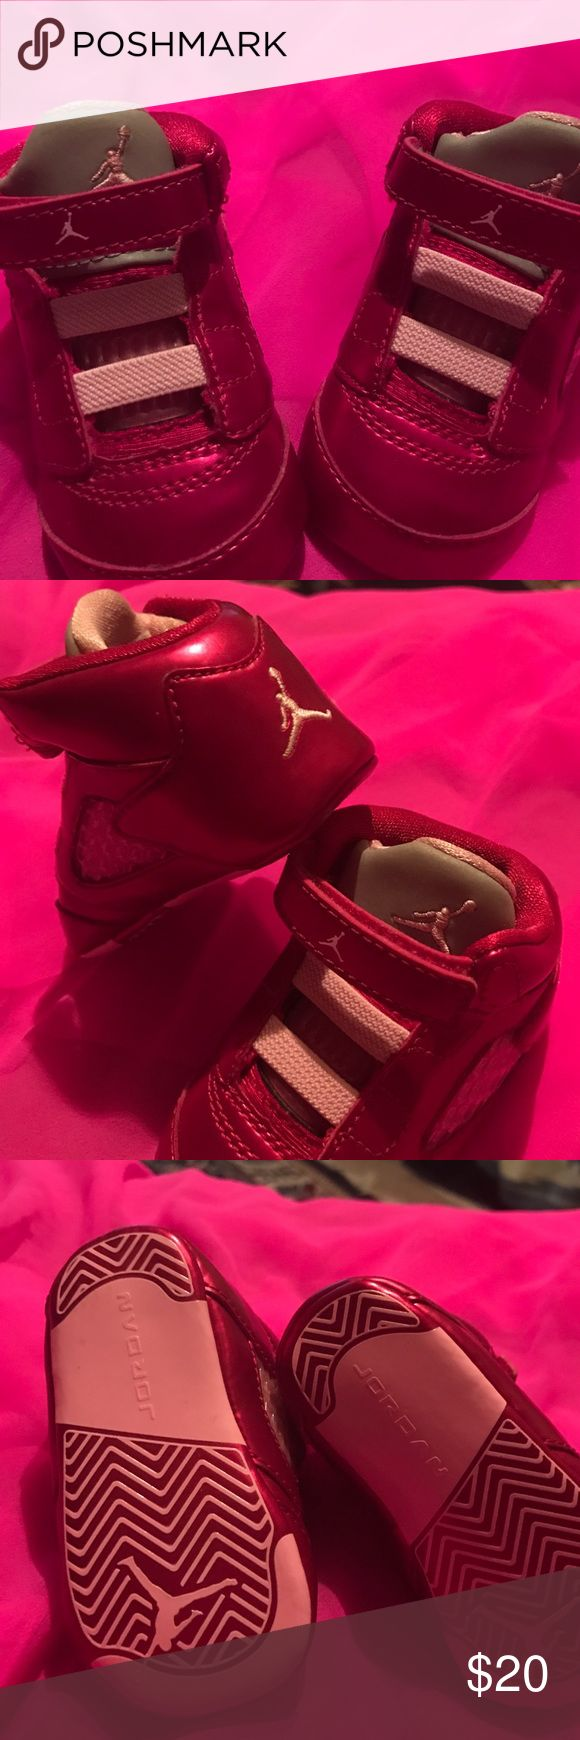 1000 ideas about baby shoes on baby